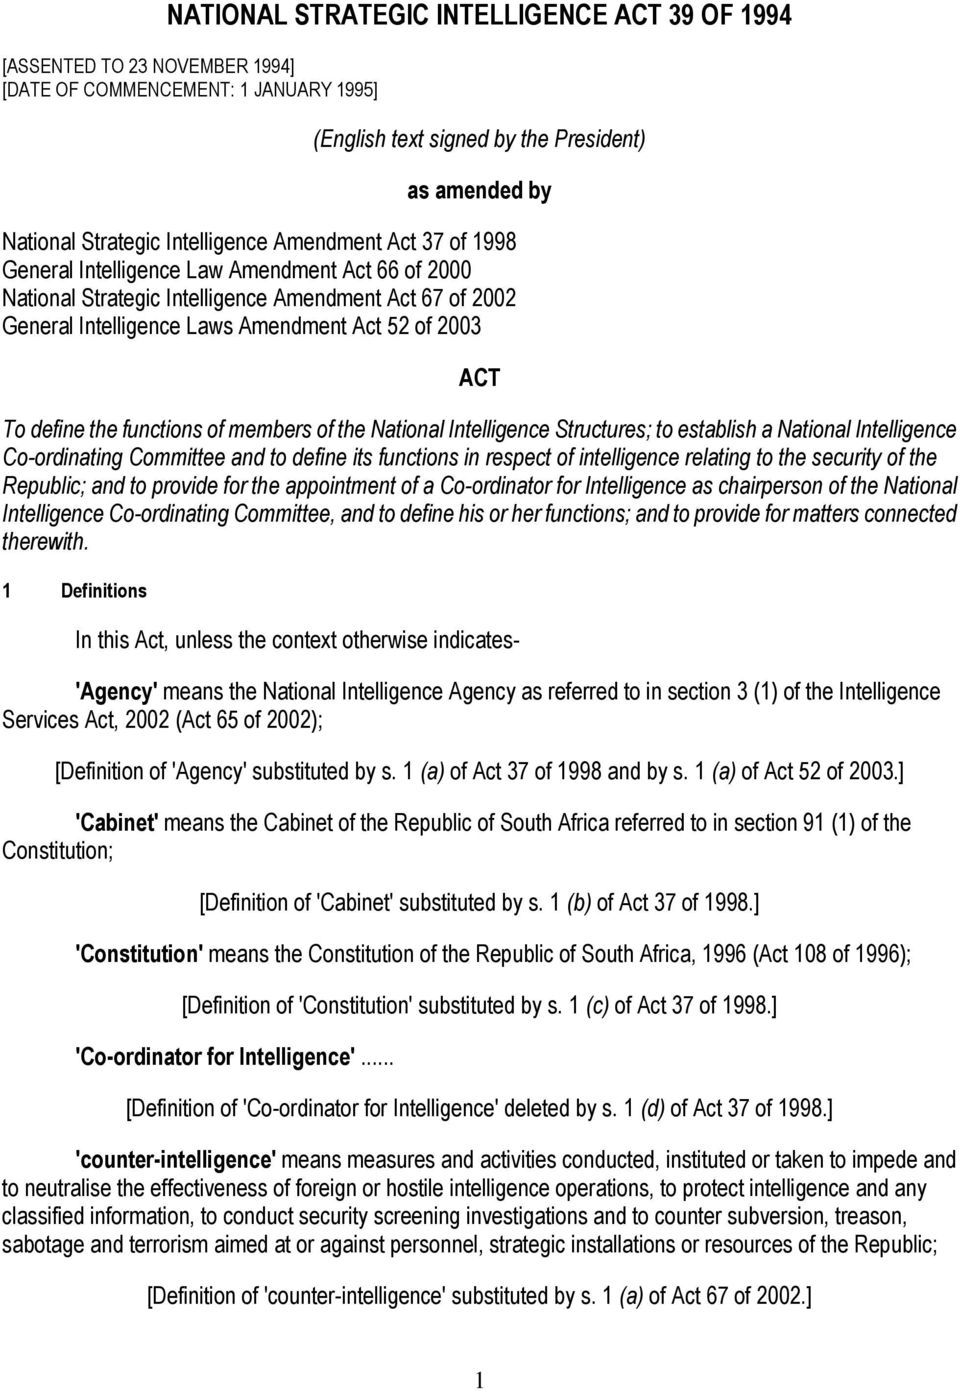 To define the functions of members of the National Intelligence Structures; to establish a National Intelligence Co-ordinating Committee and to define its functions in respect of intelligence